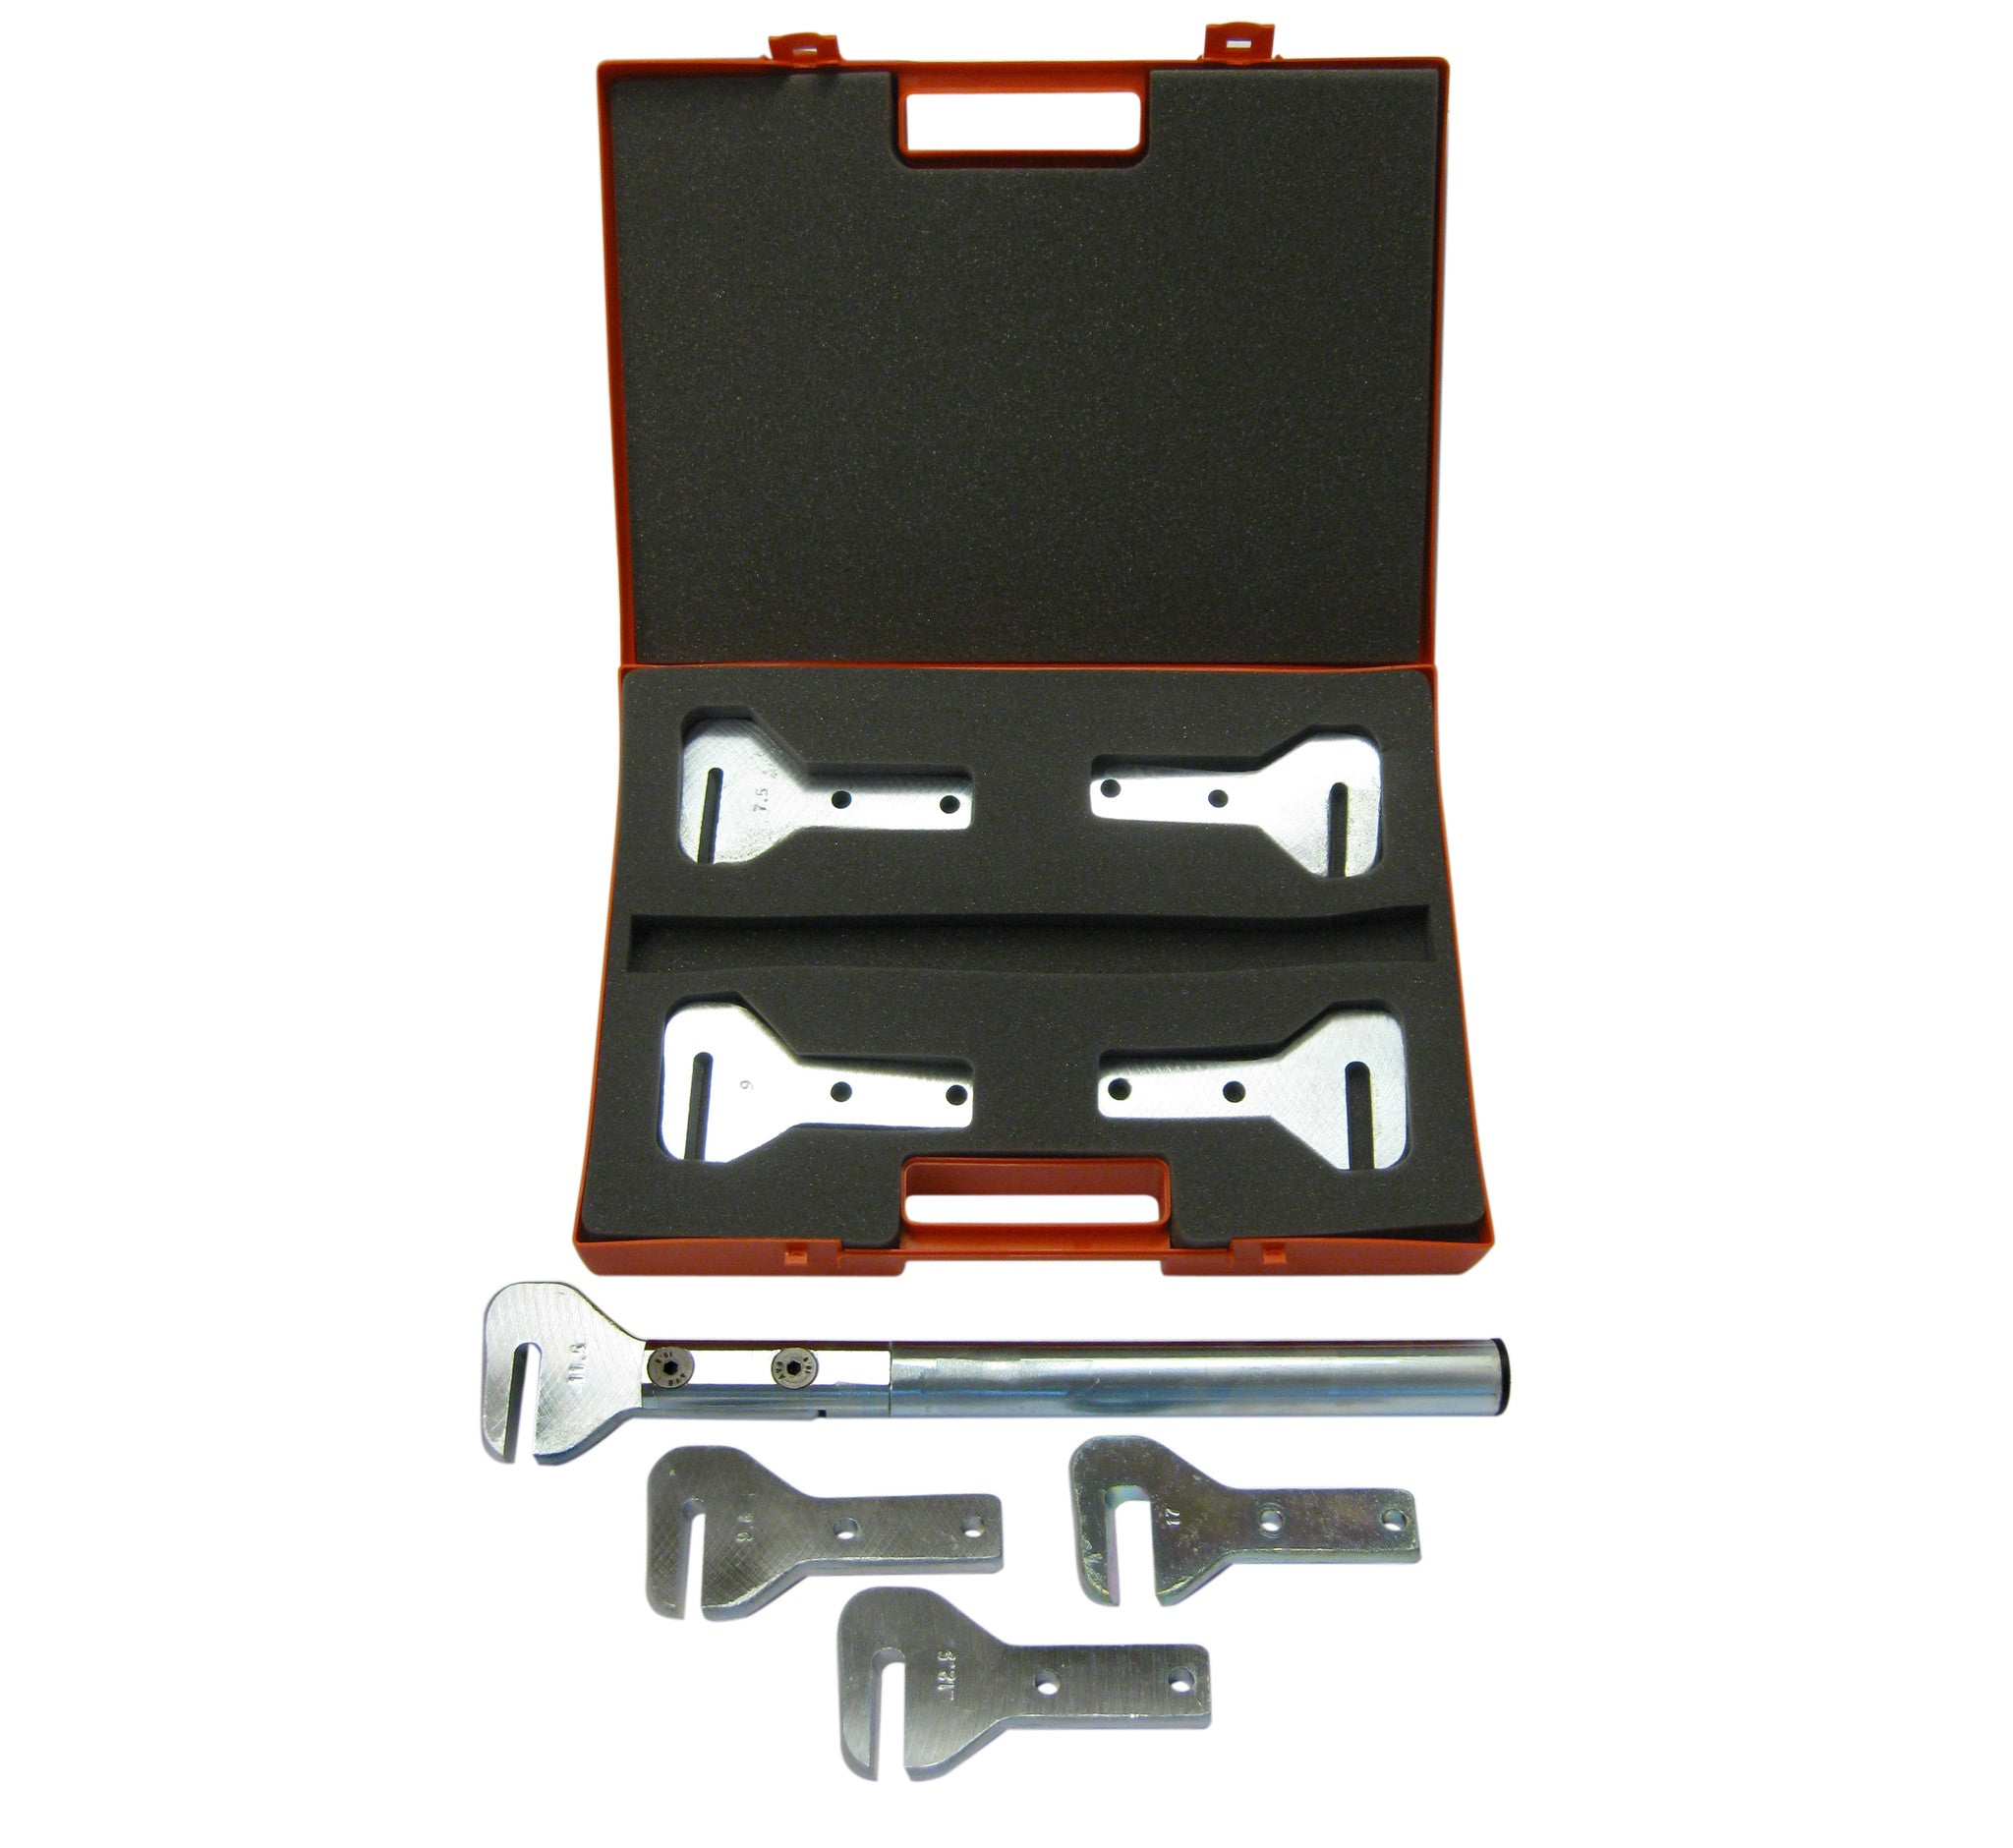 B-55 - Socket Wrench Kit for Welded Hinge Straightening